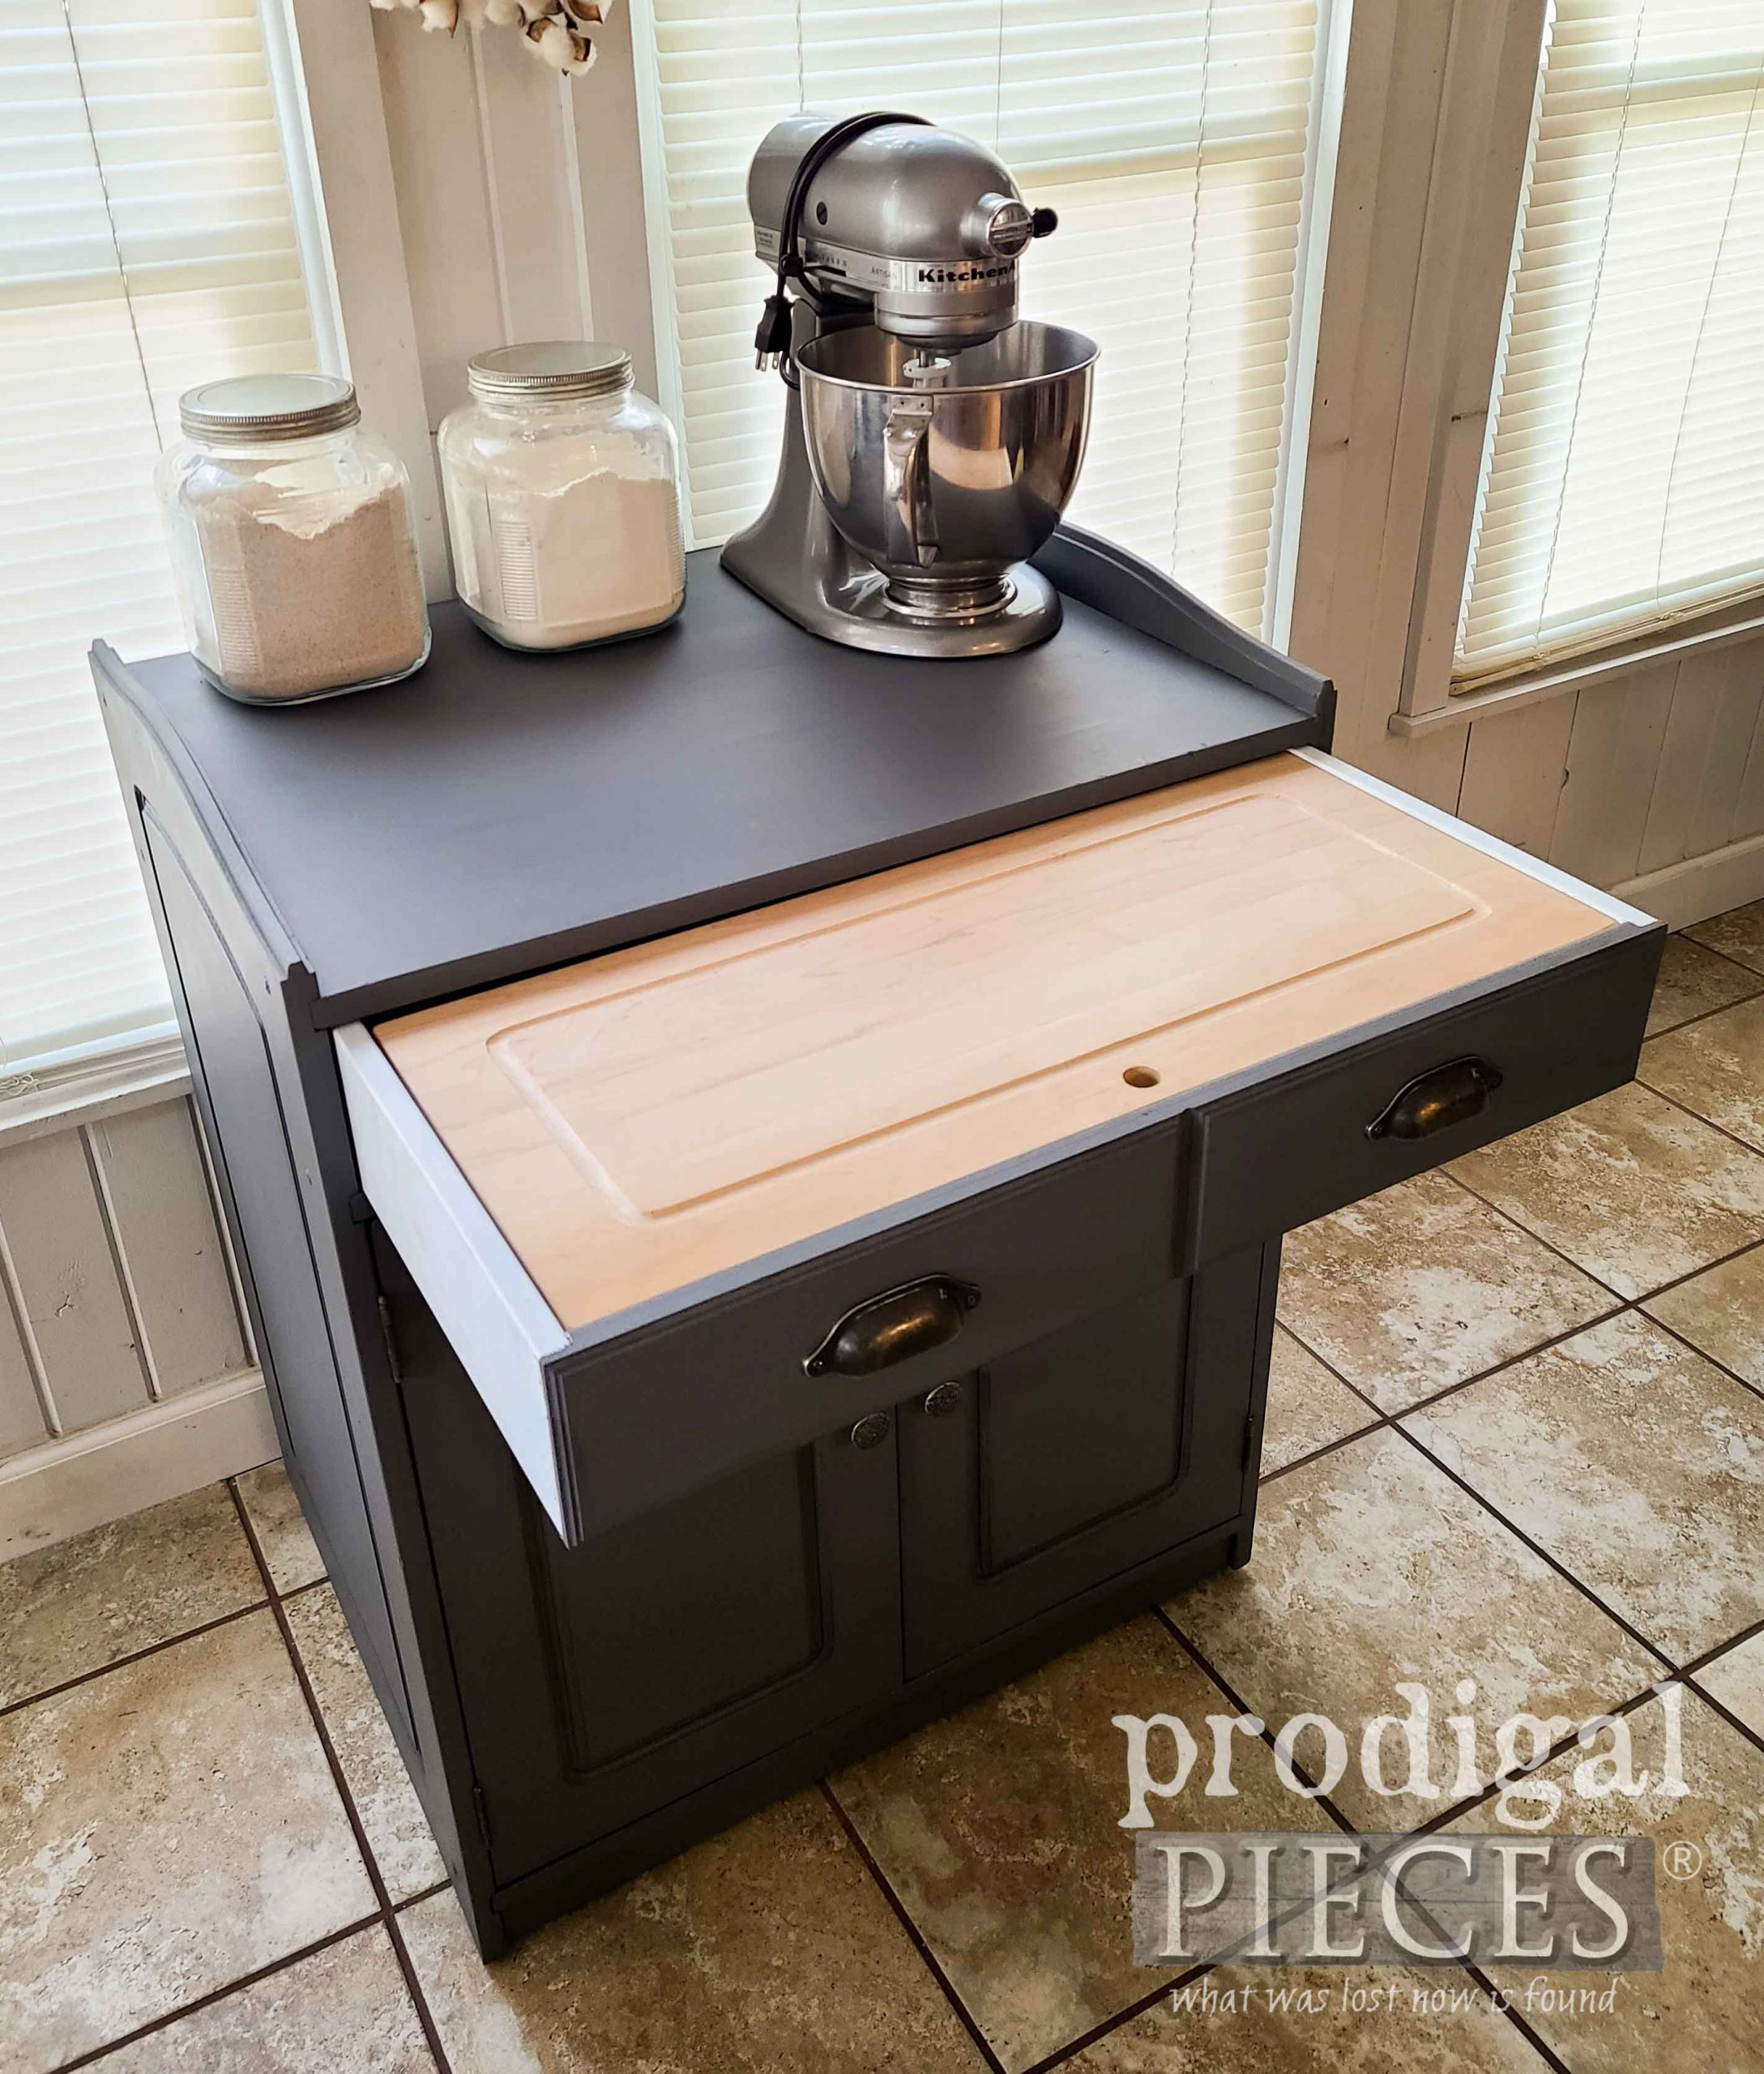 Open Baking Cabinet Drawer with Cutting Board by Larissa of Prodigal Pieces | prodigalpieces.com #prodigalpieces #farmhouse #diy #furniture #kitchen